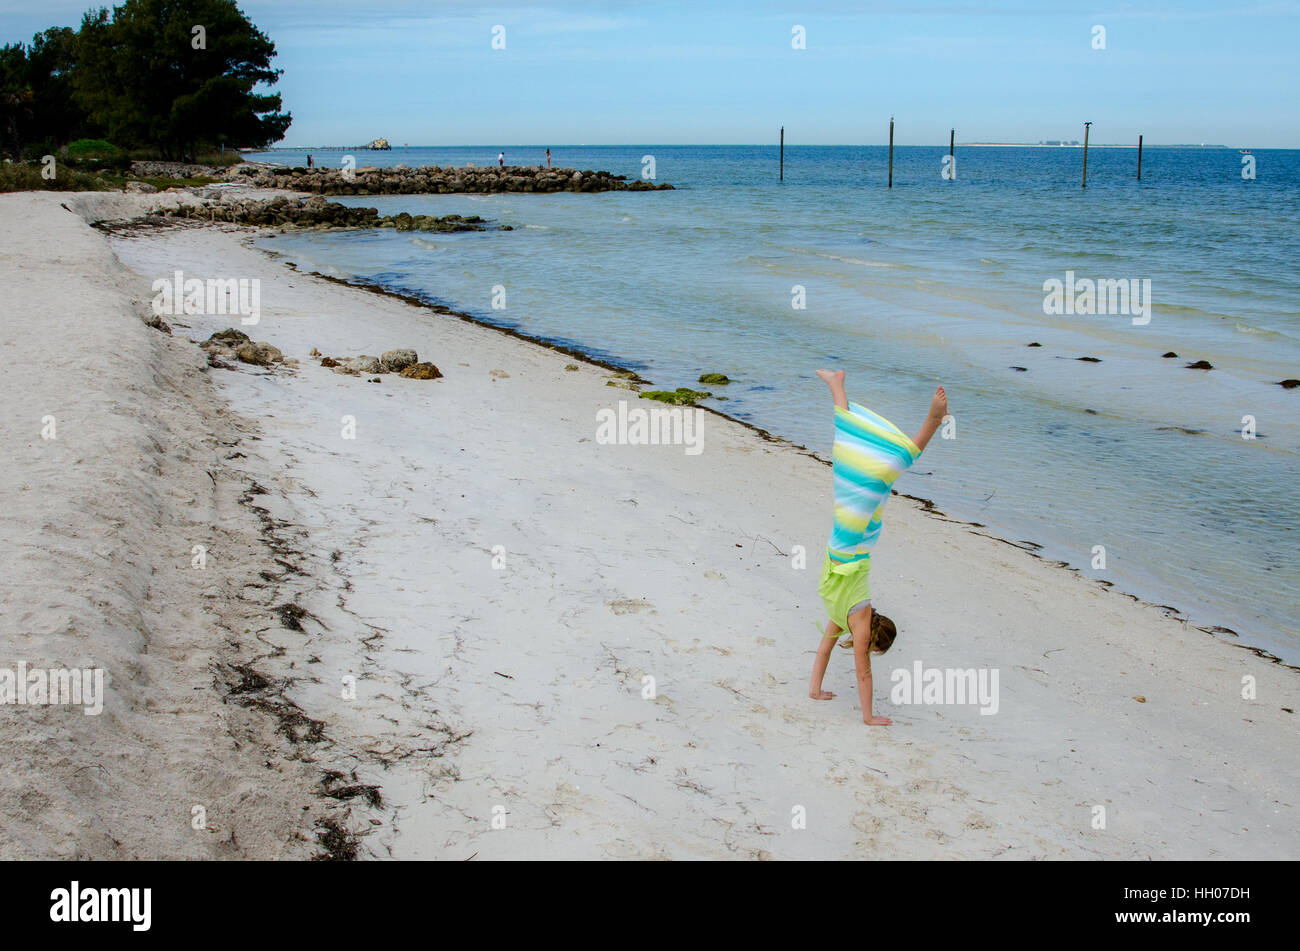 A child does a cartwheel on a white sand beach in Florida - Stock Image